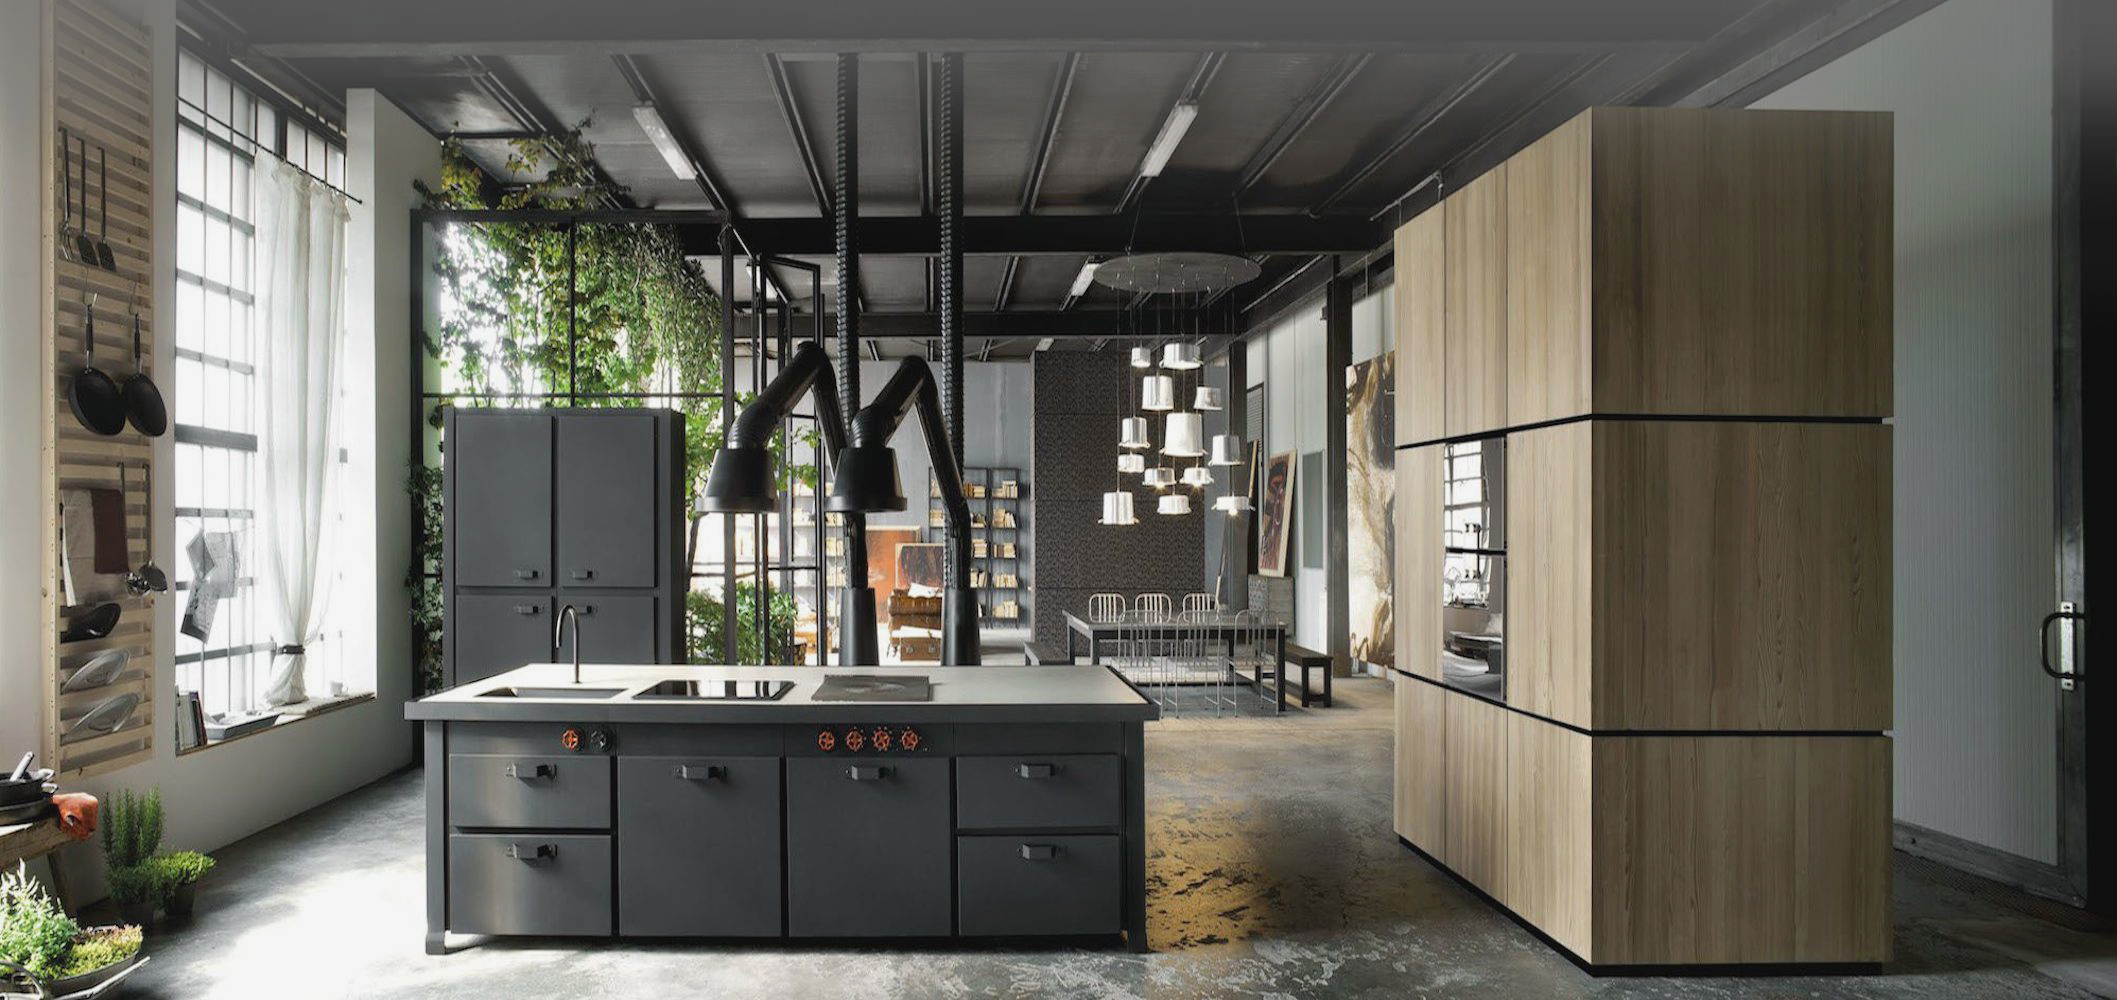 The Kitchen Here Features A Unique Use Of Industrial Style Space, With  Black Piping Connecting